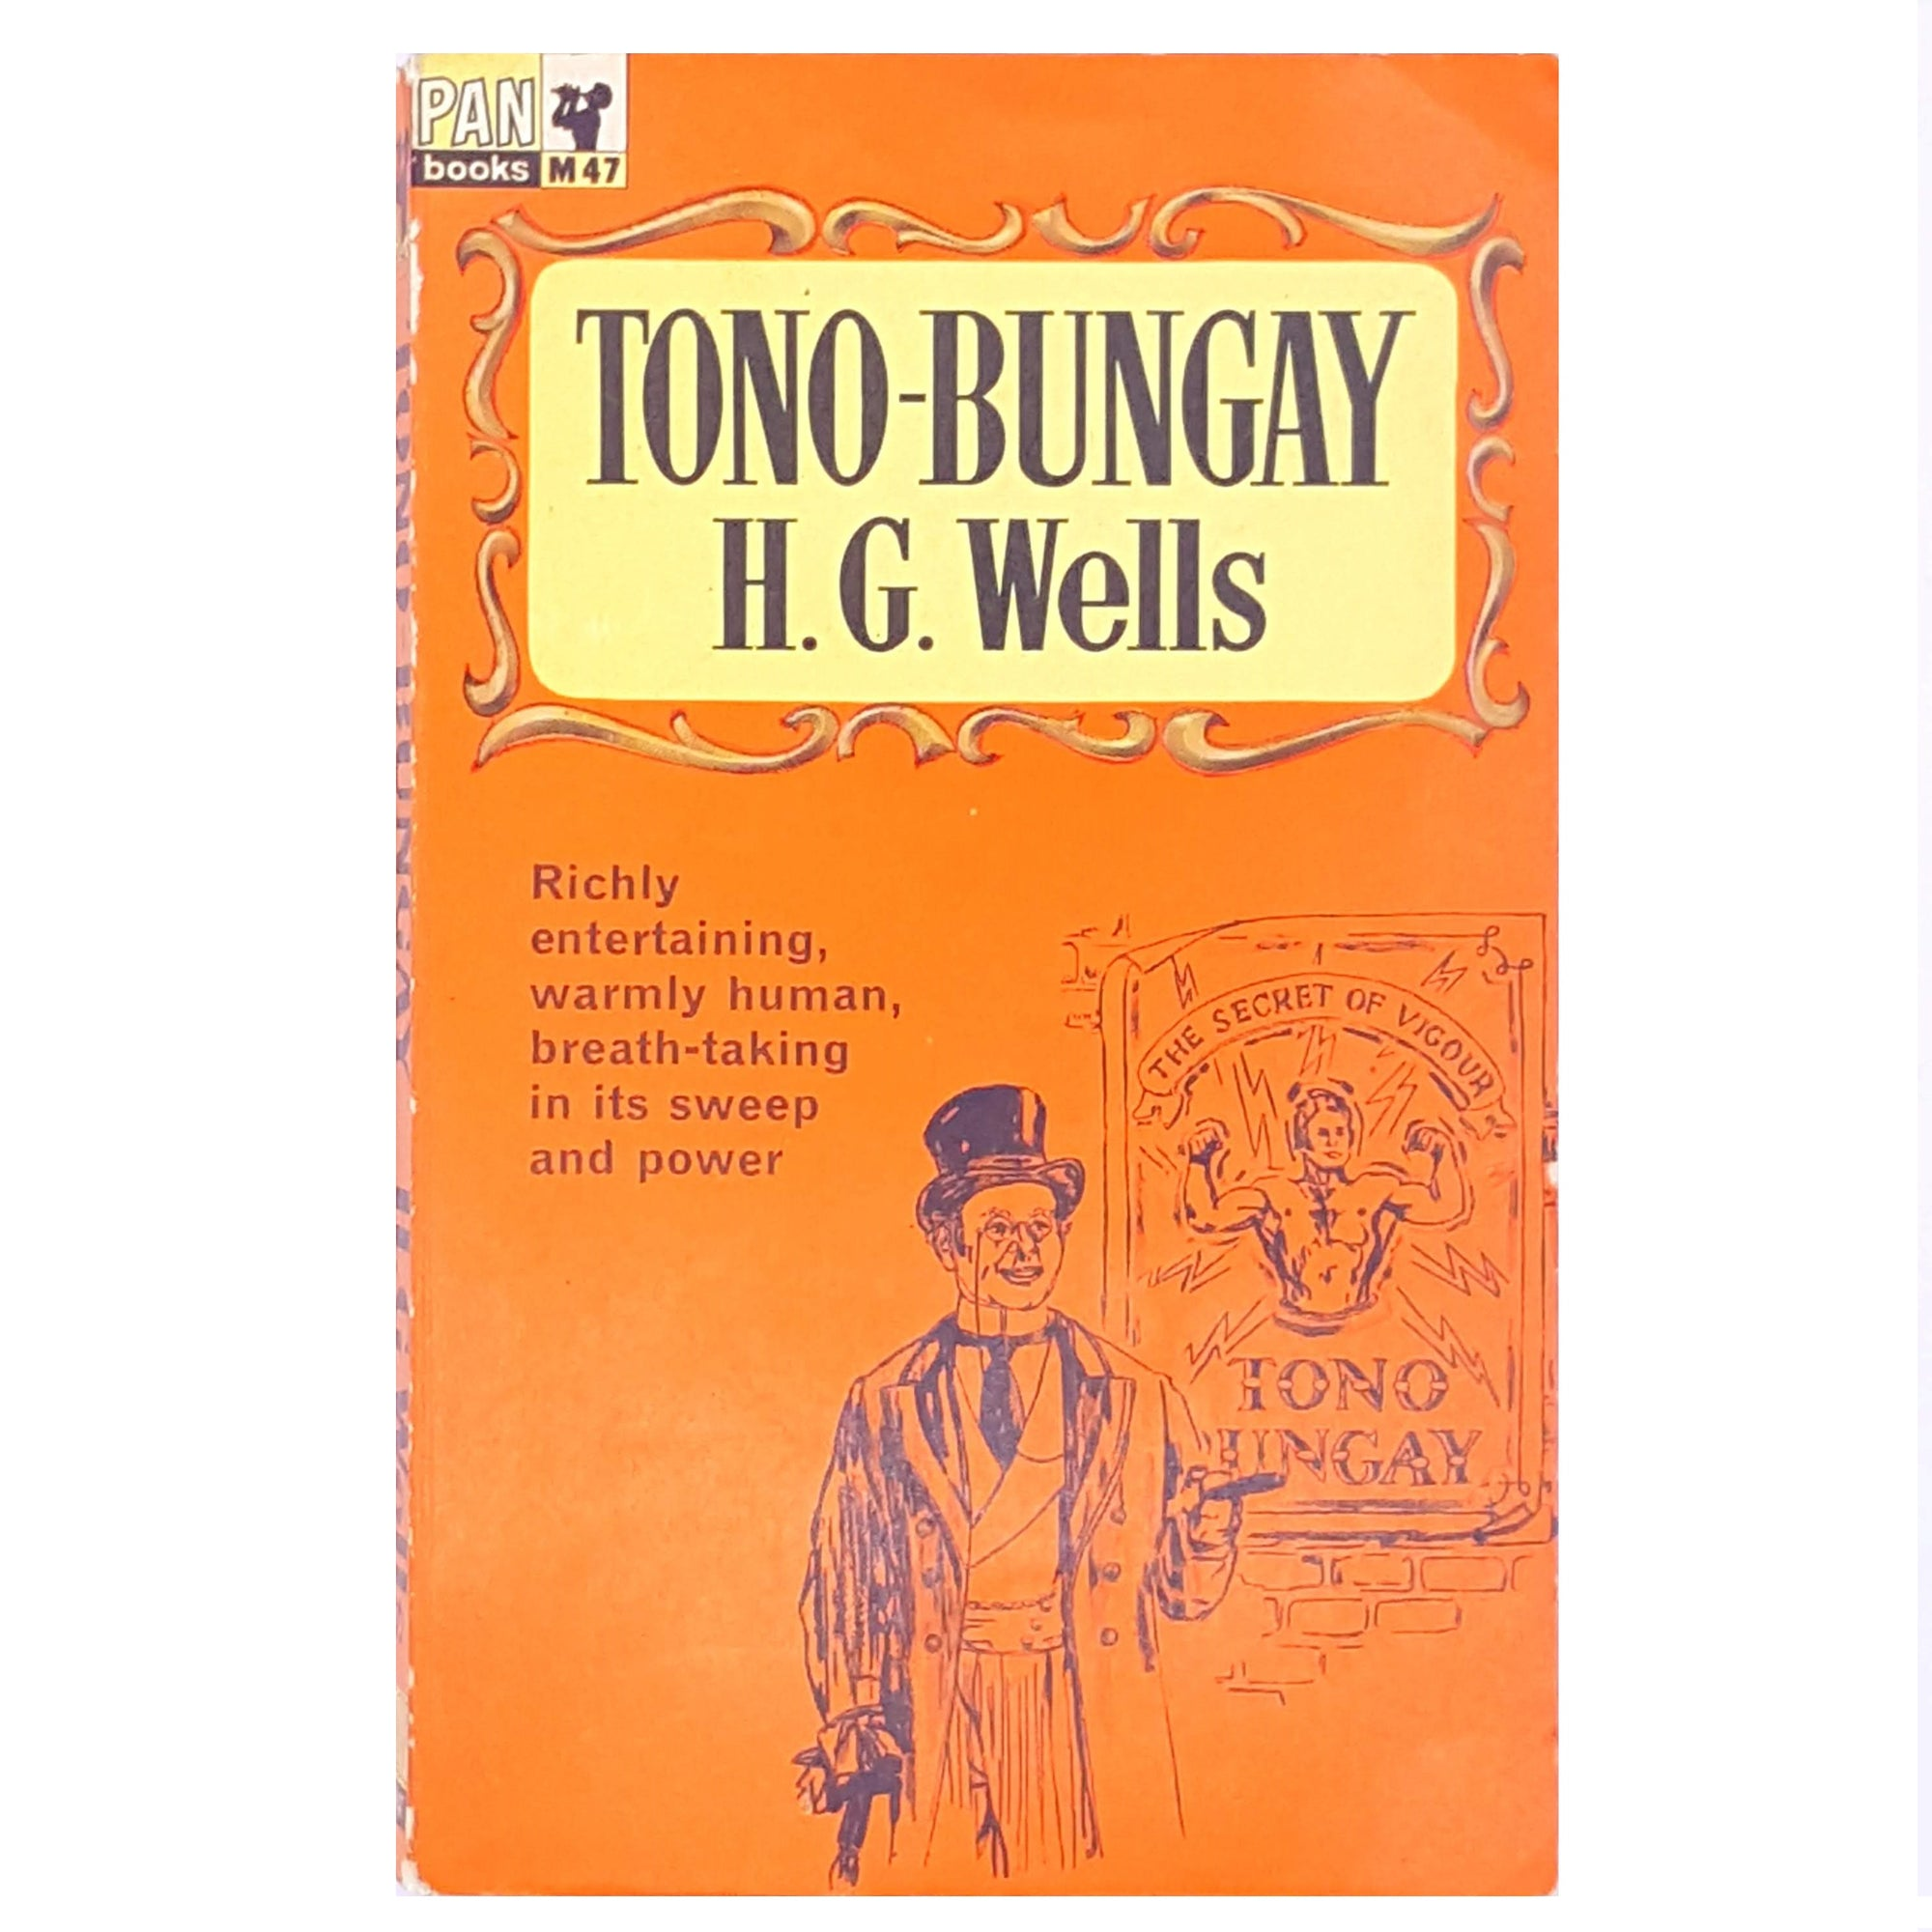 vintage-classic-antique-books-H.G.-Wells- decorative-short-stories- country-house-library-patterned-thrift-old-short-story-science-fiction-Tono-Bungay-